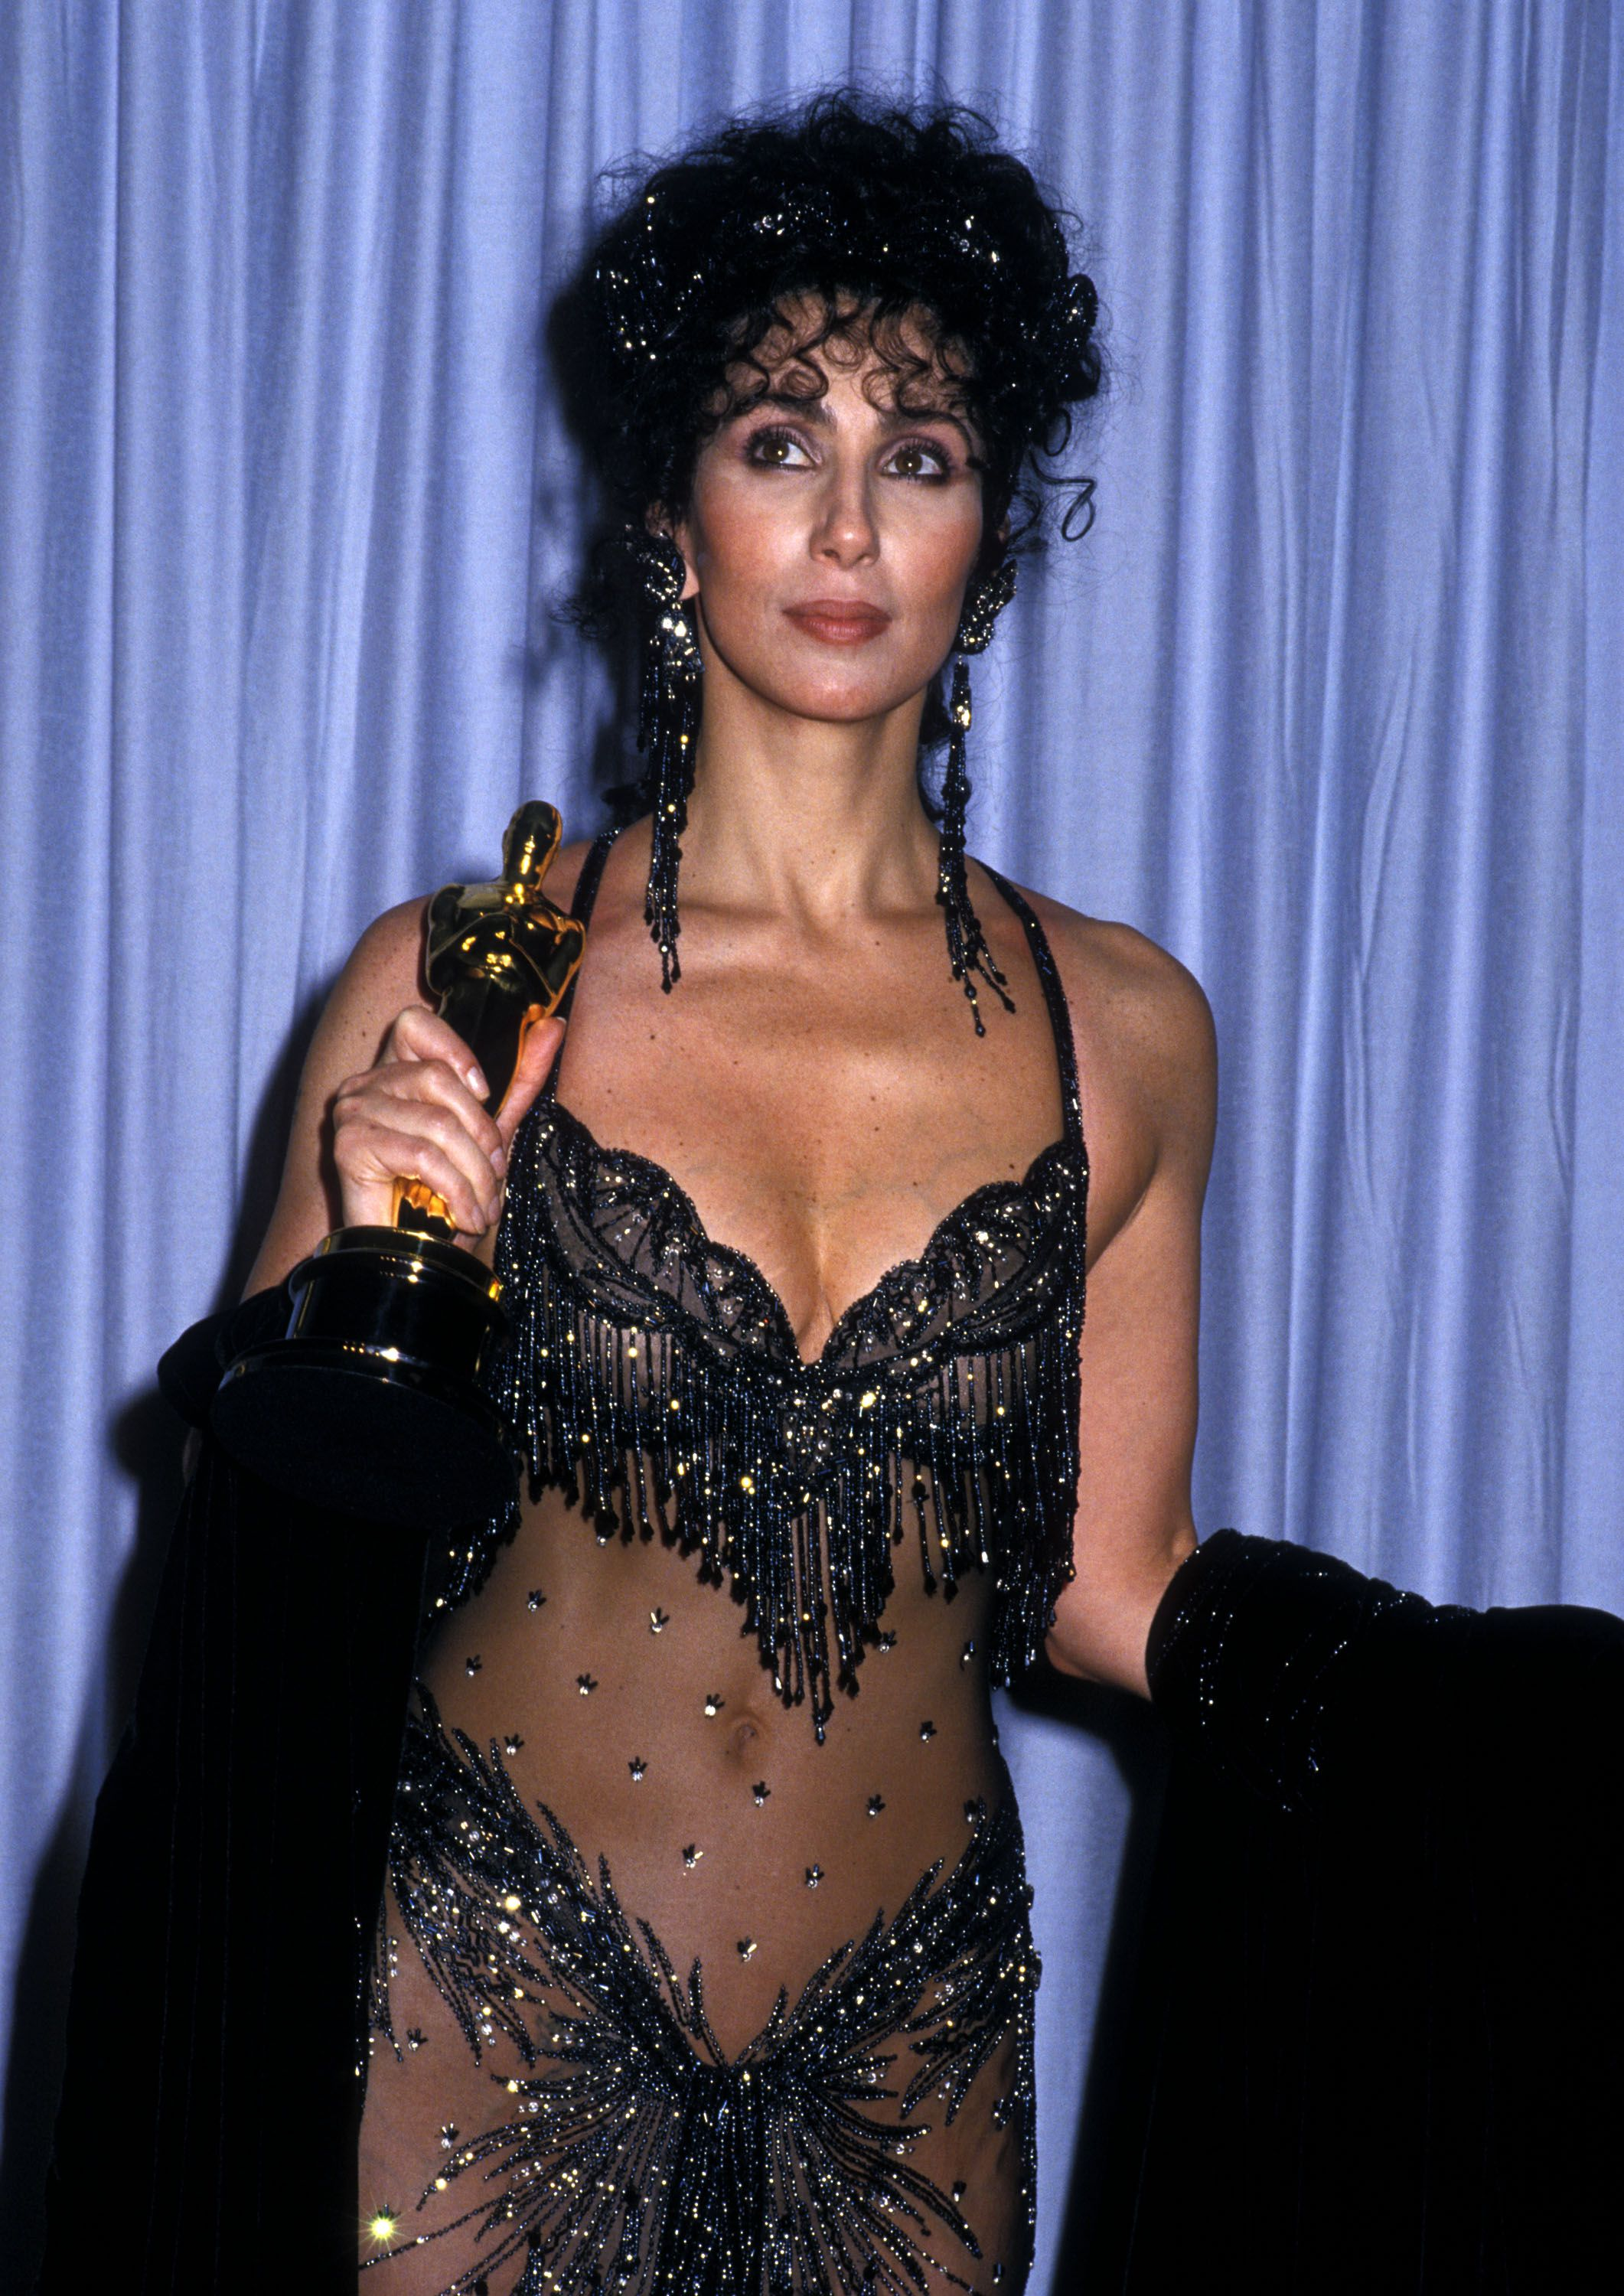 Cher Iconic Oscars Dress – Remember When Cher Wore Bob Mackie's Naked Dress  to the Academy Awards in 1988